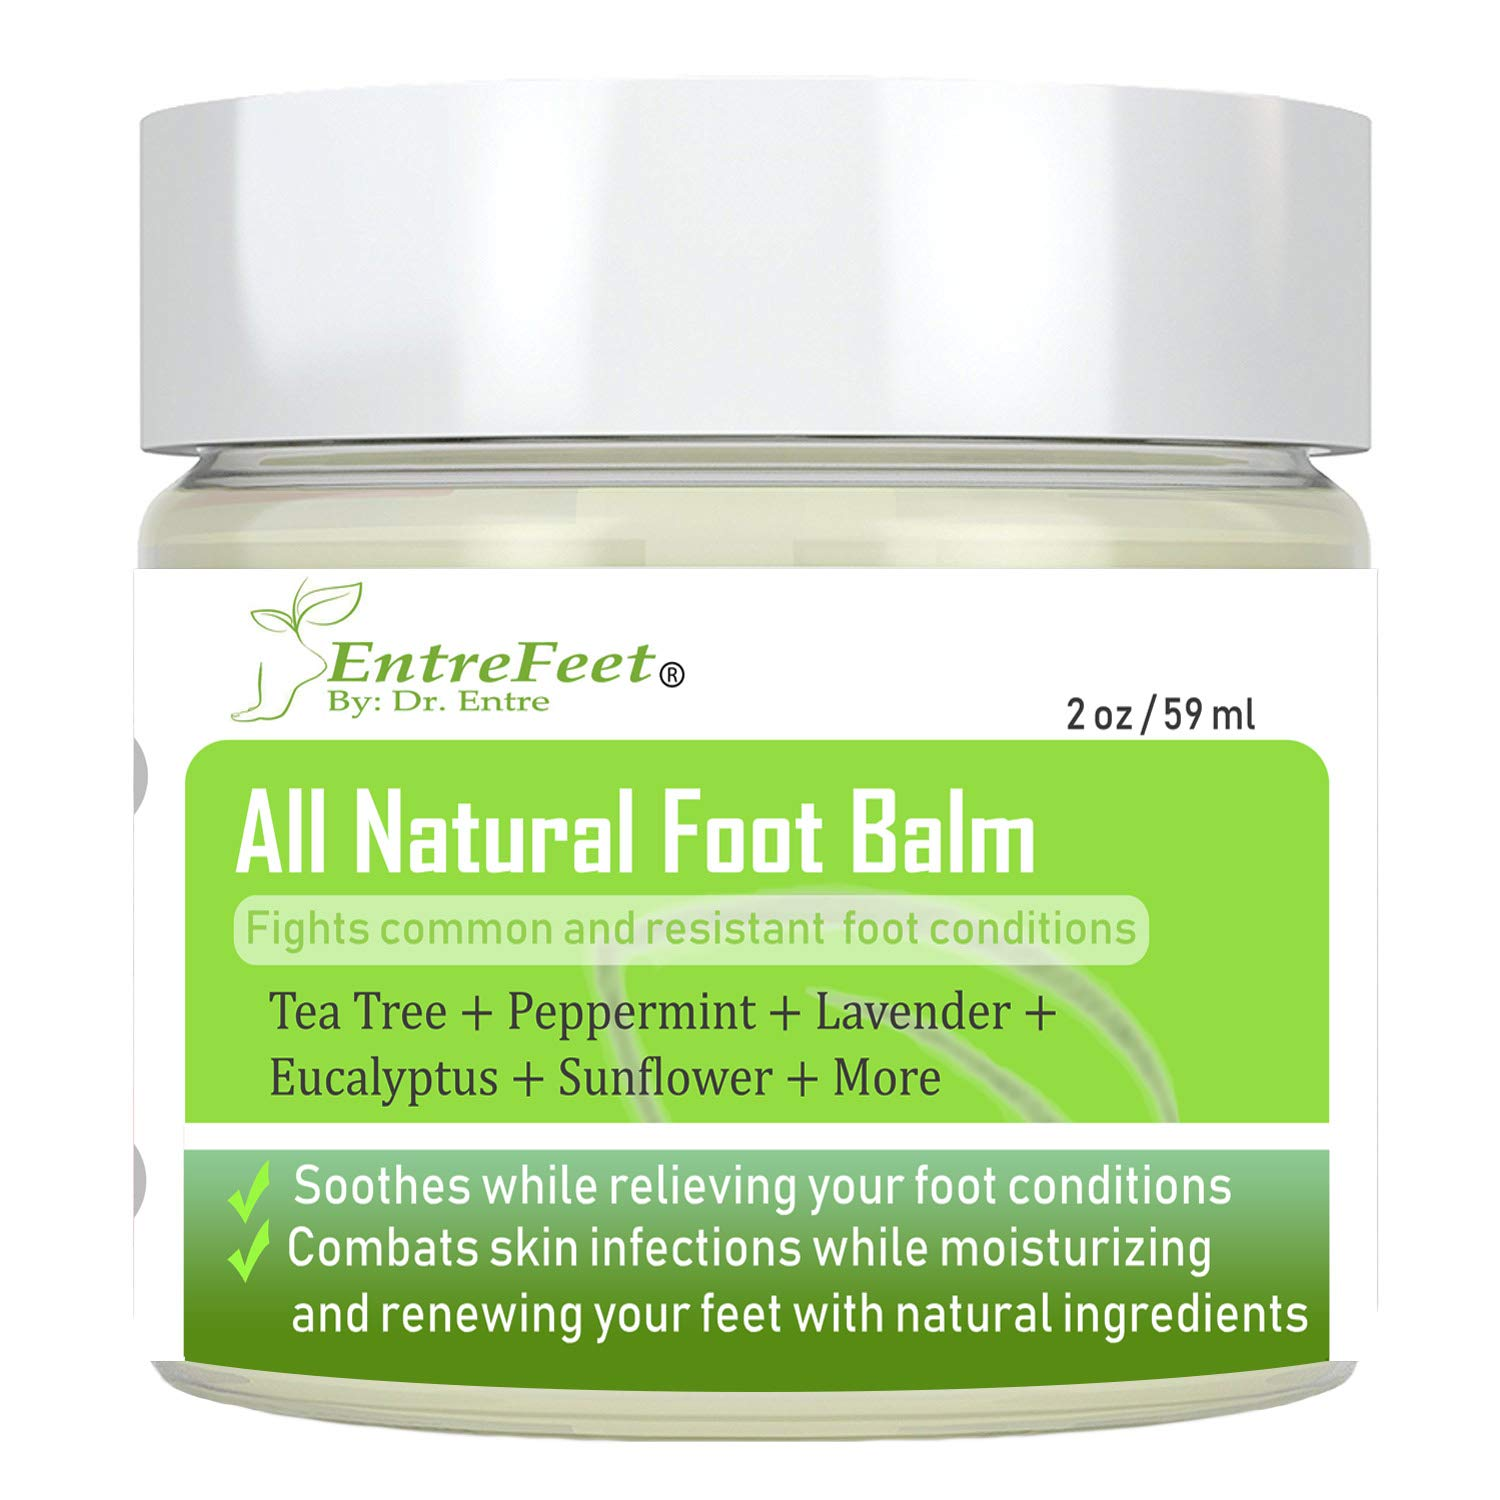 Dr. Entre's Foot Balm: Organic Natural Hydrating Relief for Dry Cracked Heels, Callused Feet, Athletes Foot, Bunions, Fungal Infections, and More - Effective and Soothing - Satisfaction Guaranteed EntreMogul